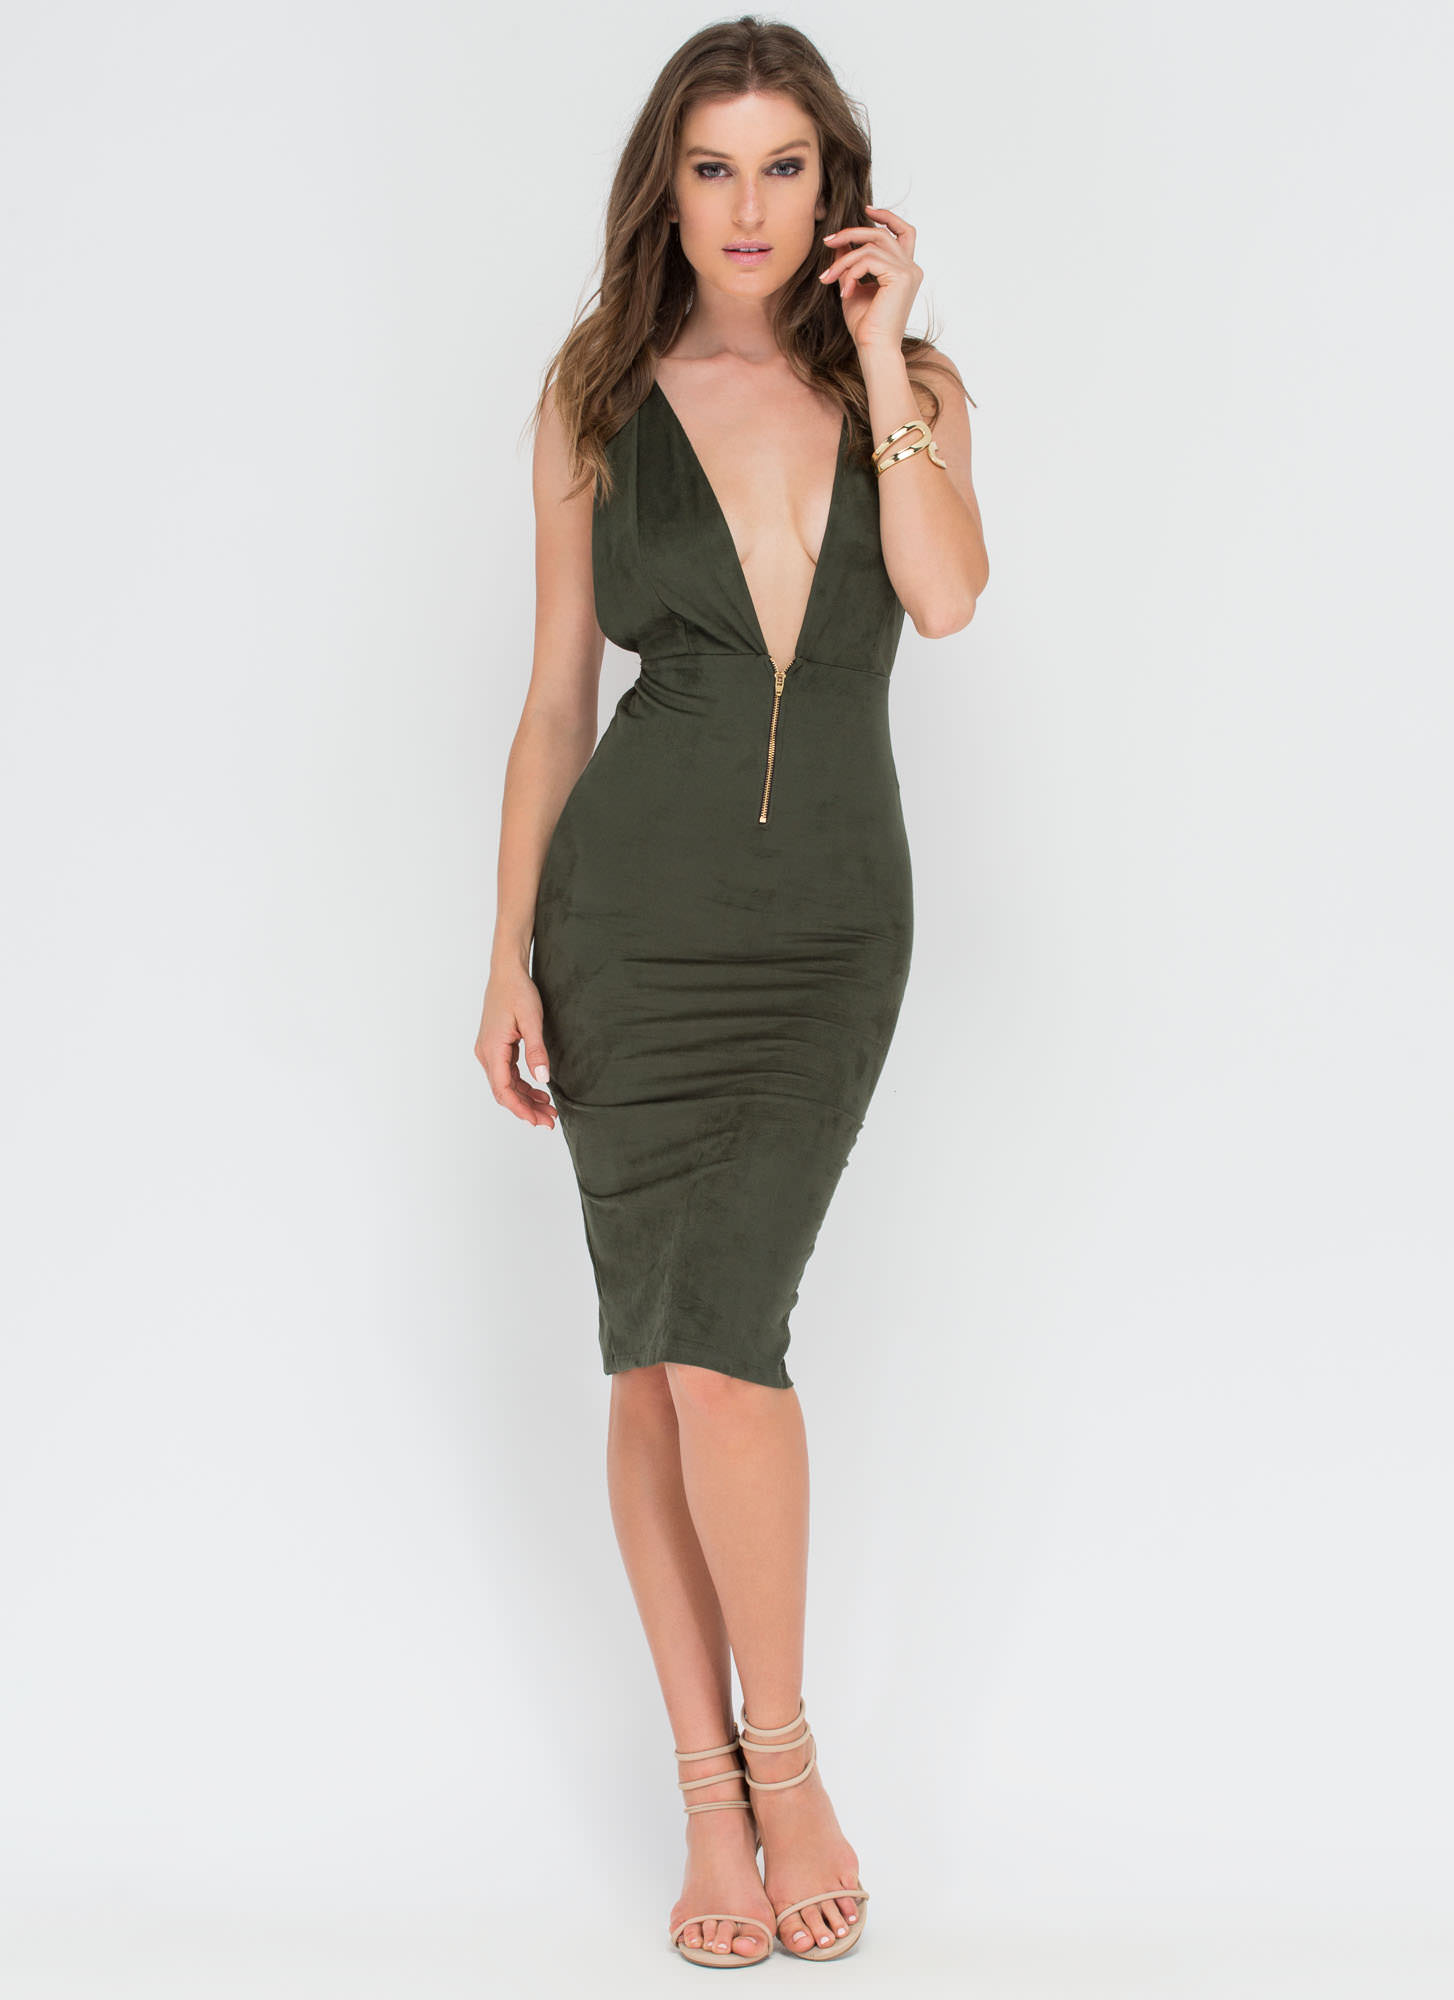 Take Notice Plunging Faux Suede Dress OLIVE